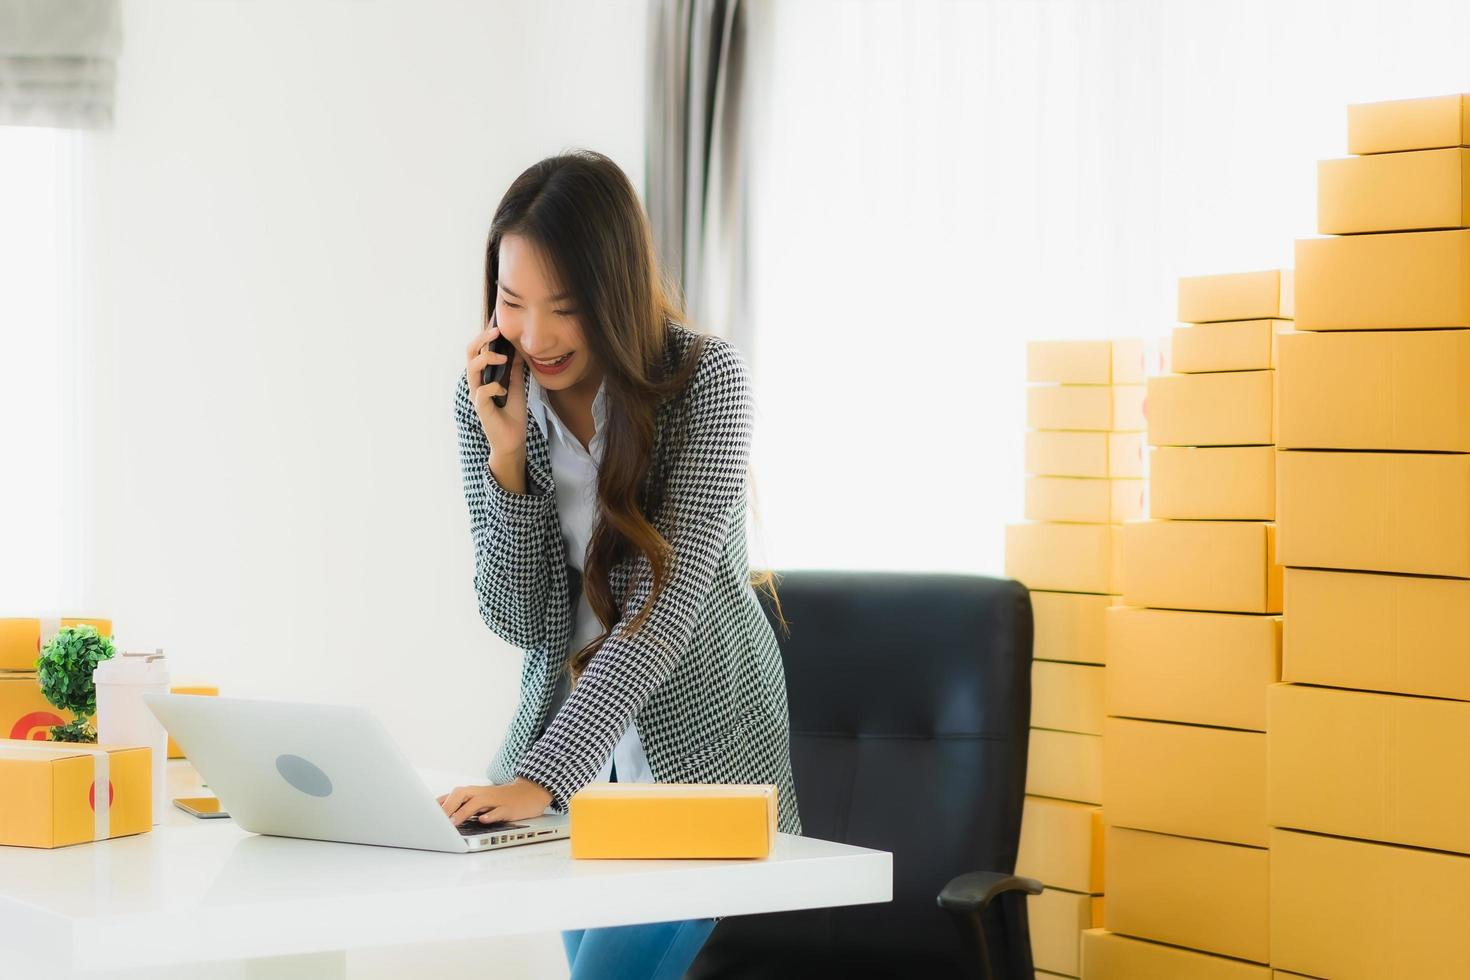 Businesswoman making a call and working on computer with packages behind her photo